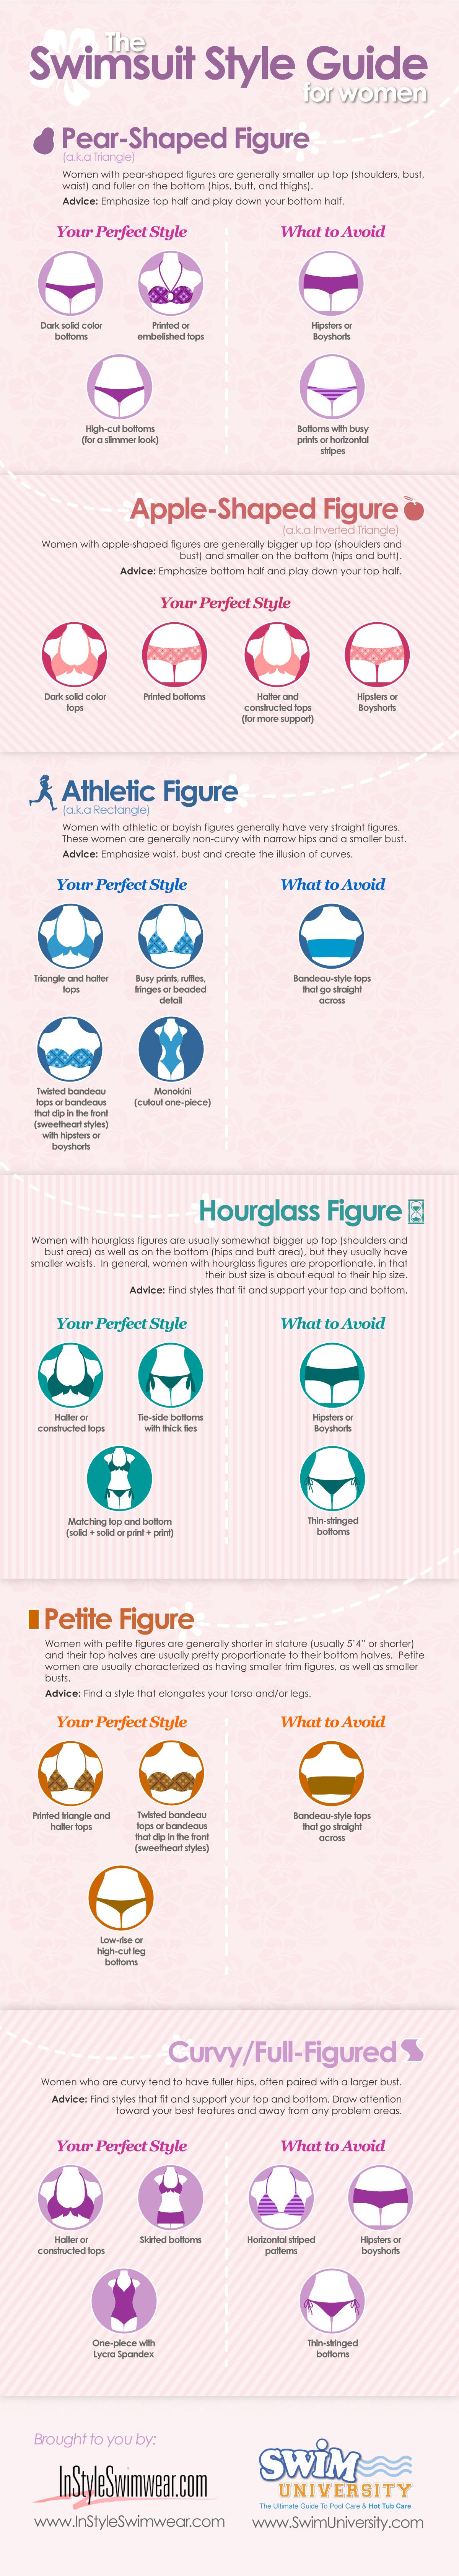 Best wedding dresses for athletic body type  The Swimsuit Style Guide for Women Infographic with